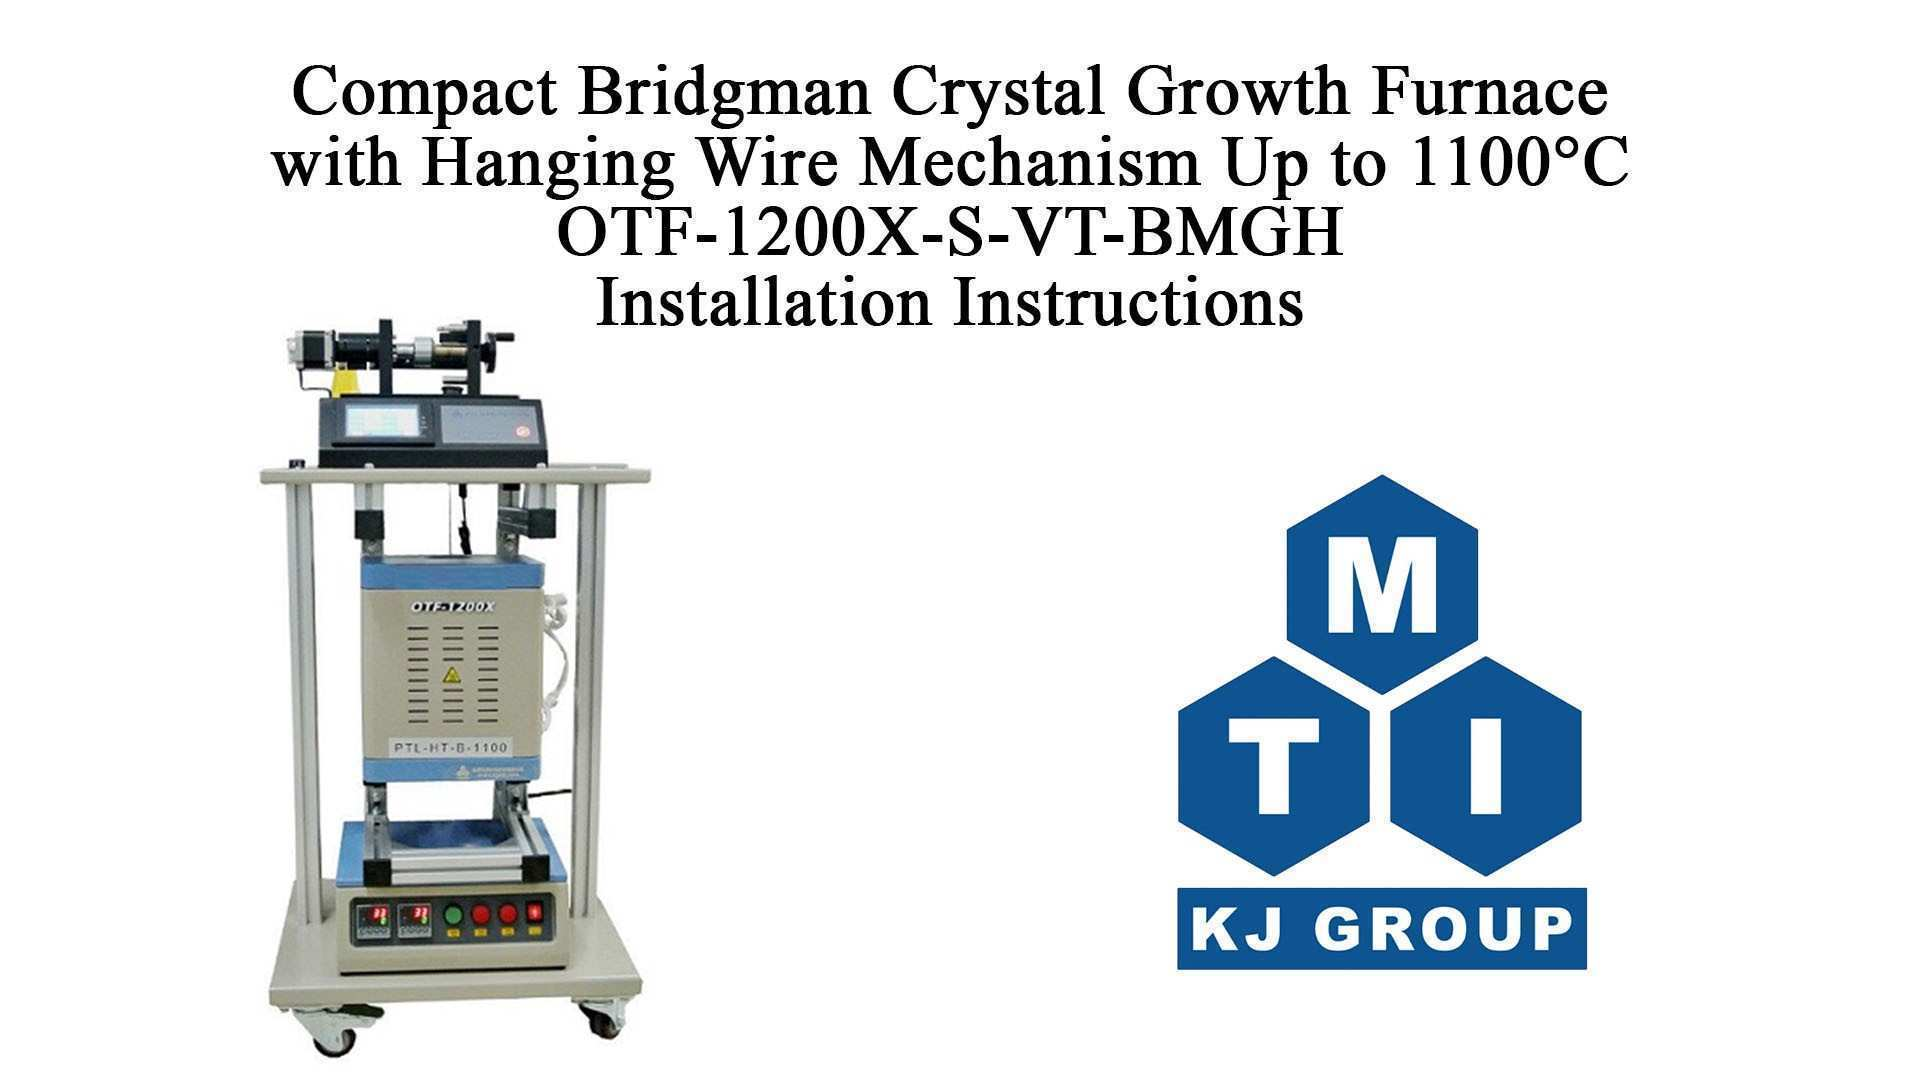 pact Bridgman Crystal Growth Furnace with Wire Travel Mechanism